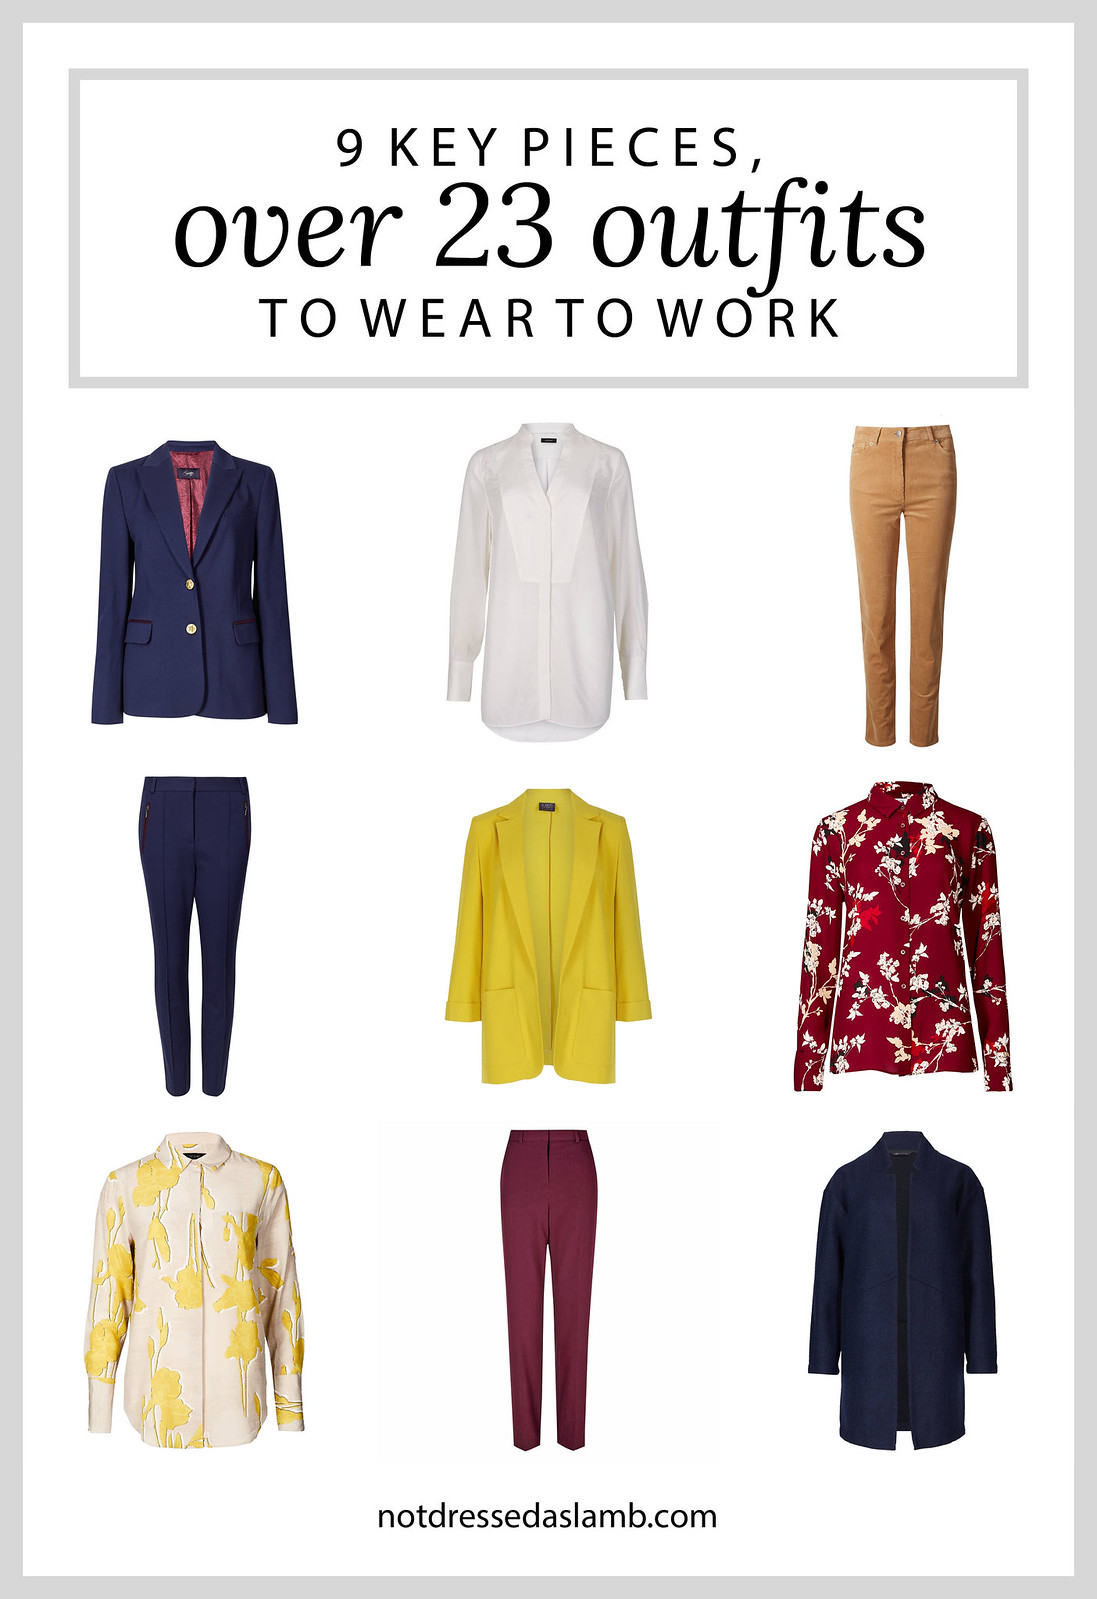 23 Workwear Outfits From 9 Key Pieces Perfect for a Creative Office | Not Dressed As Lamb, over 40 style